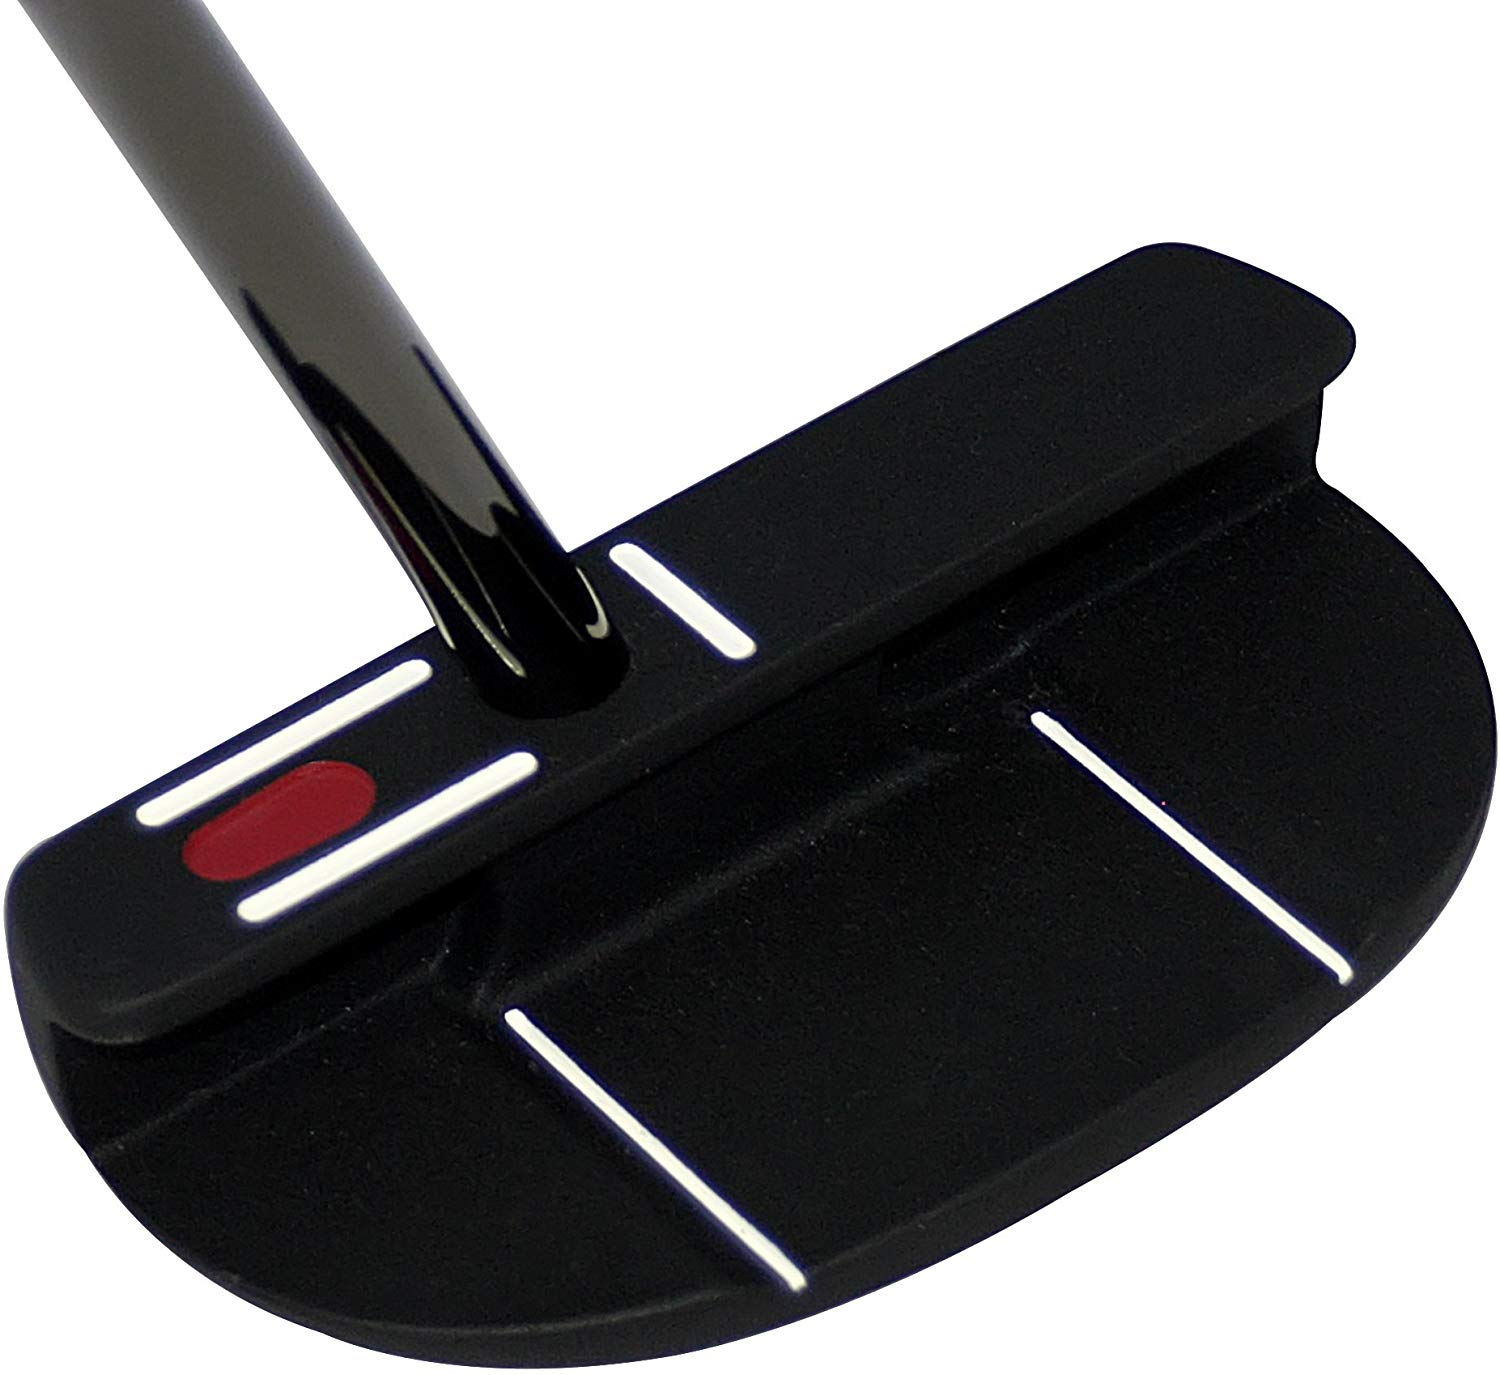 Seemore FGP Black Mallet Putter Review